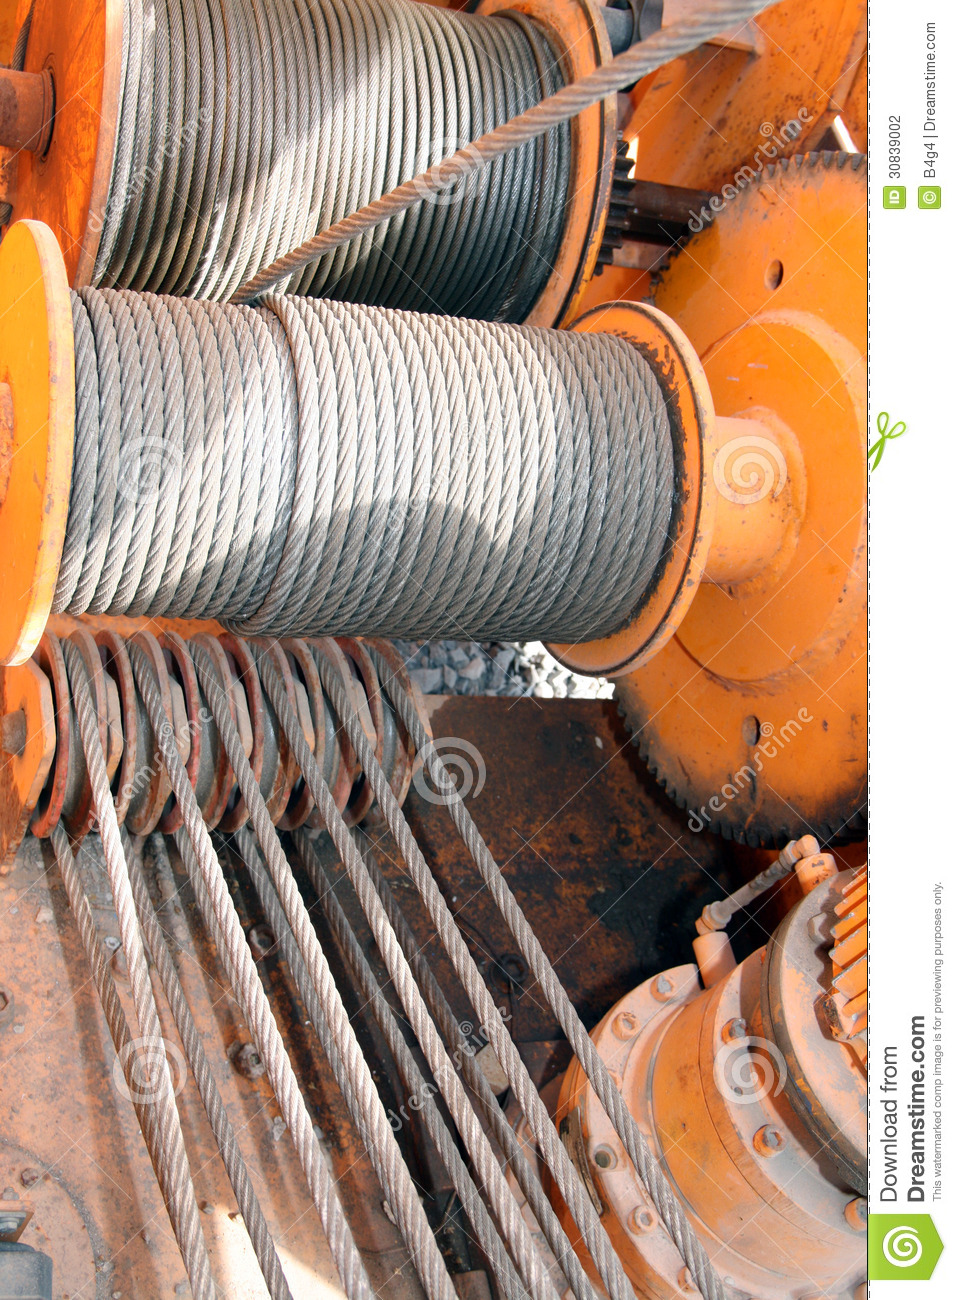 Pulleys In Cranes : Crane pulleys and cables stock photo image of tonnage